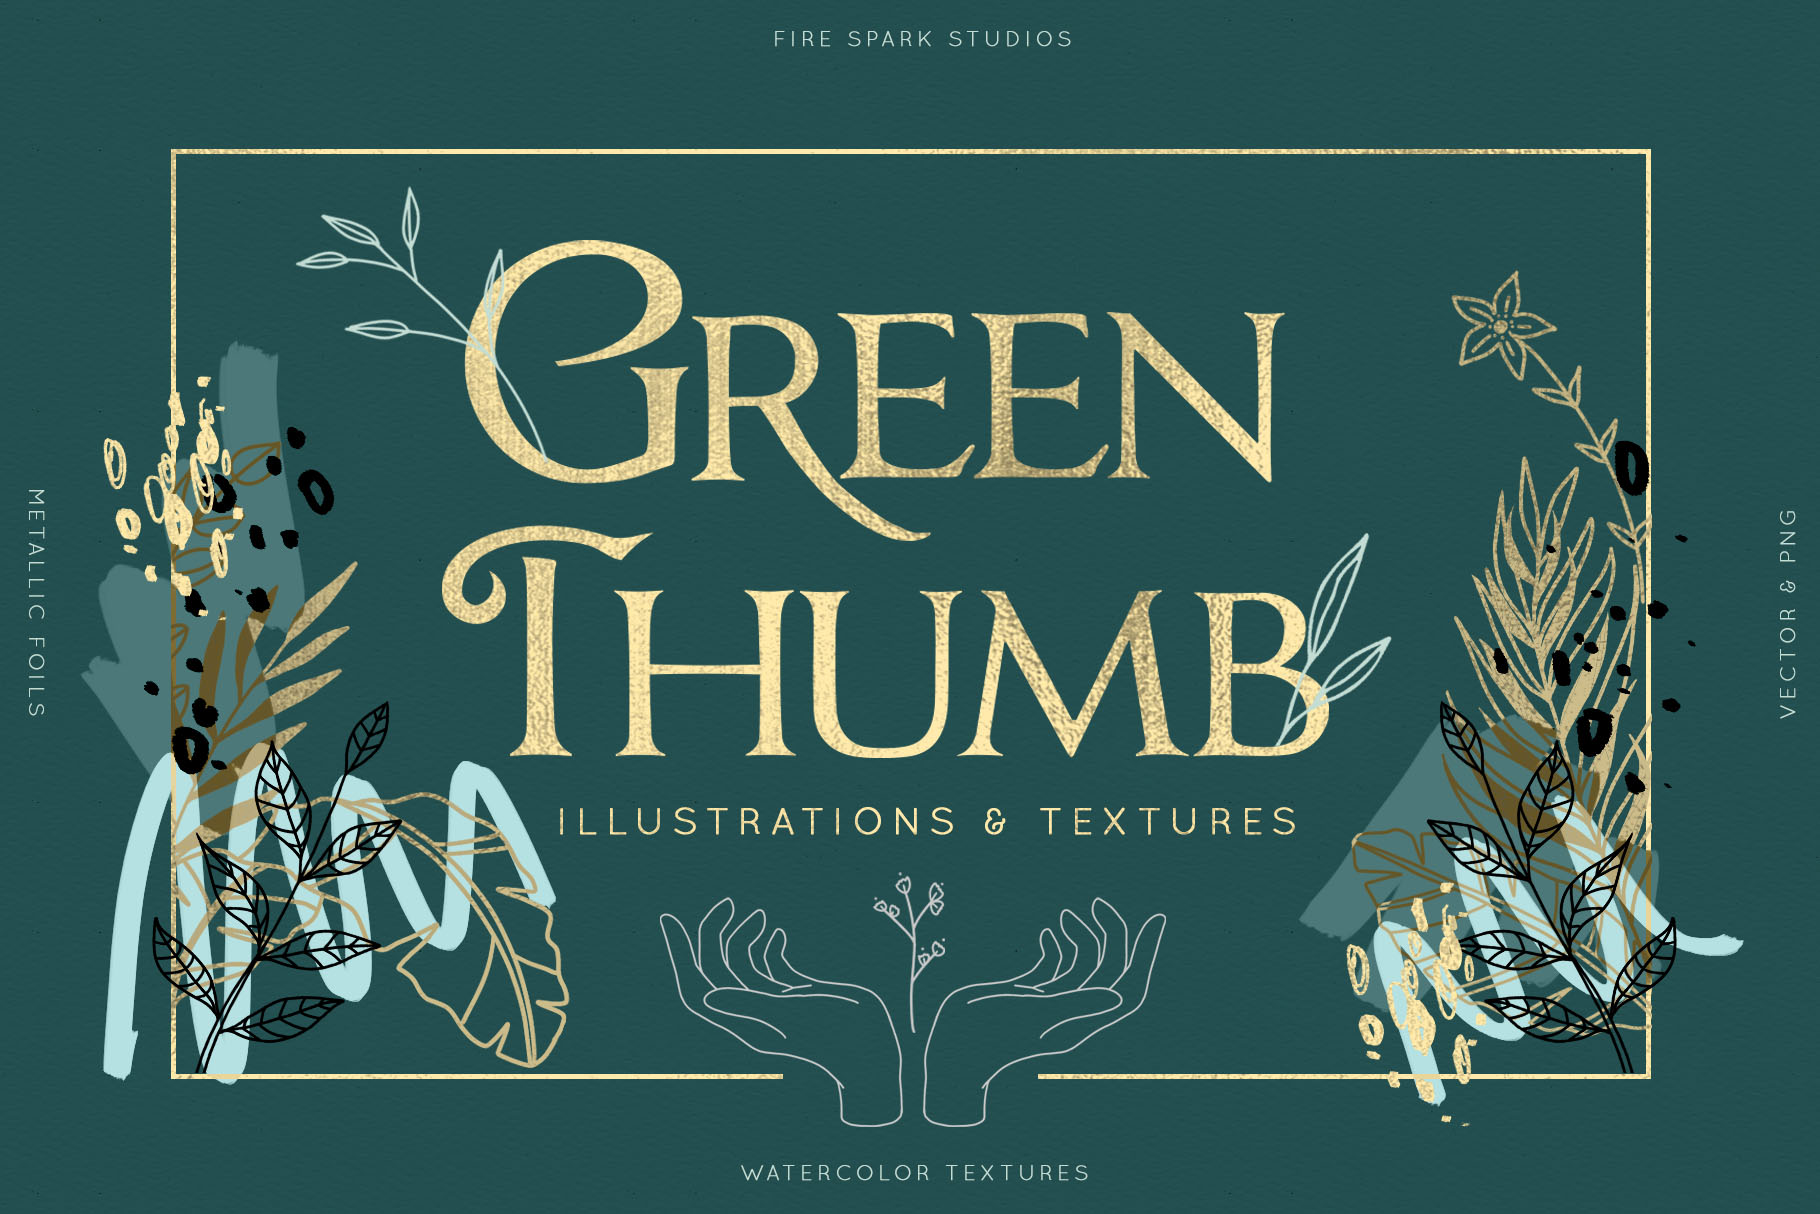 Green Thumb Illustrations & Textures example image 1